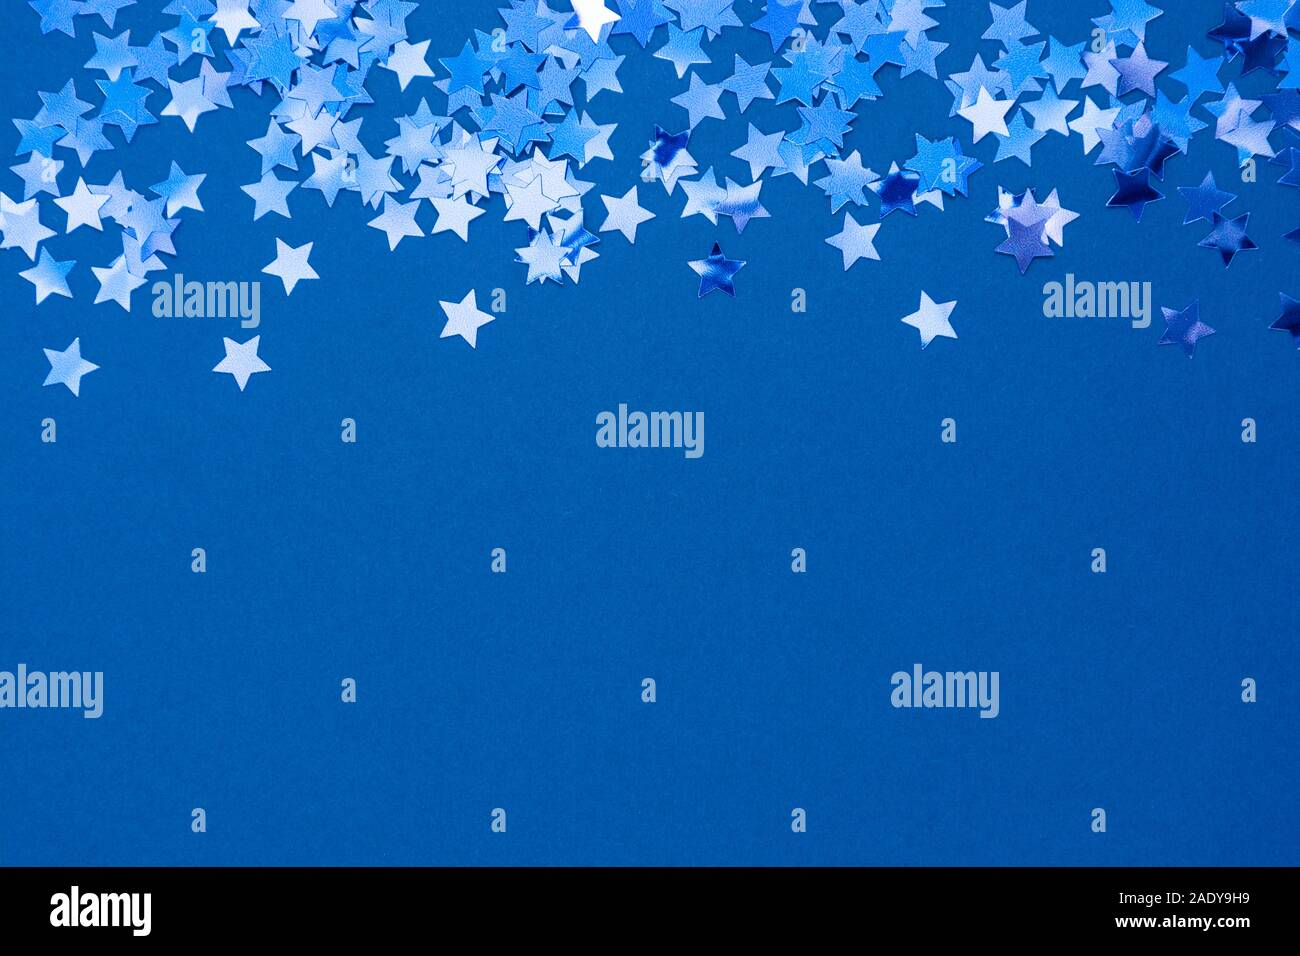 blue christmas background stars light high resolution stock photography and images alamy https www alamy com blue abstract christmas background or texture with stars confetti on blue background space for text image335587765 html